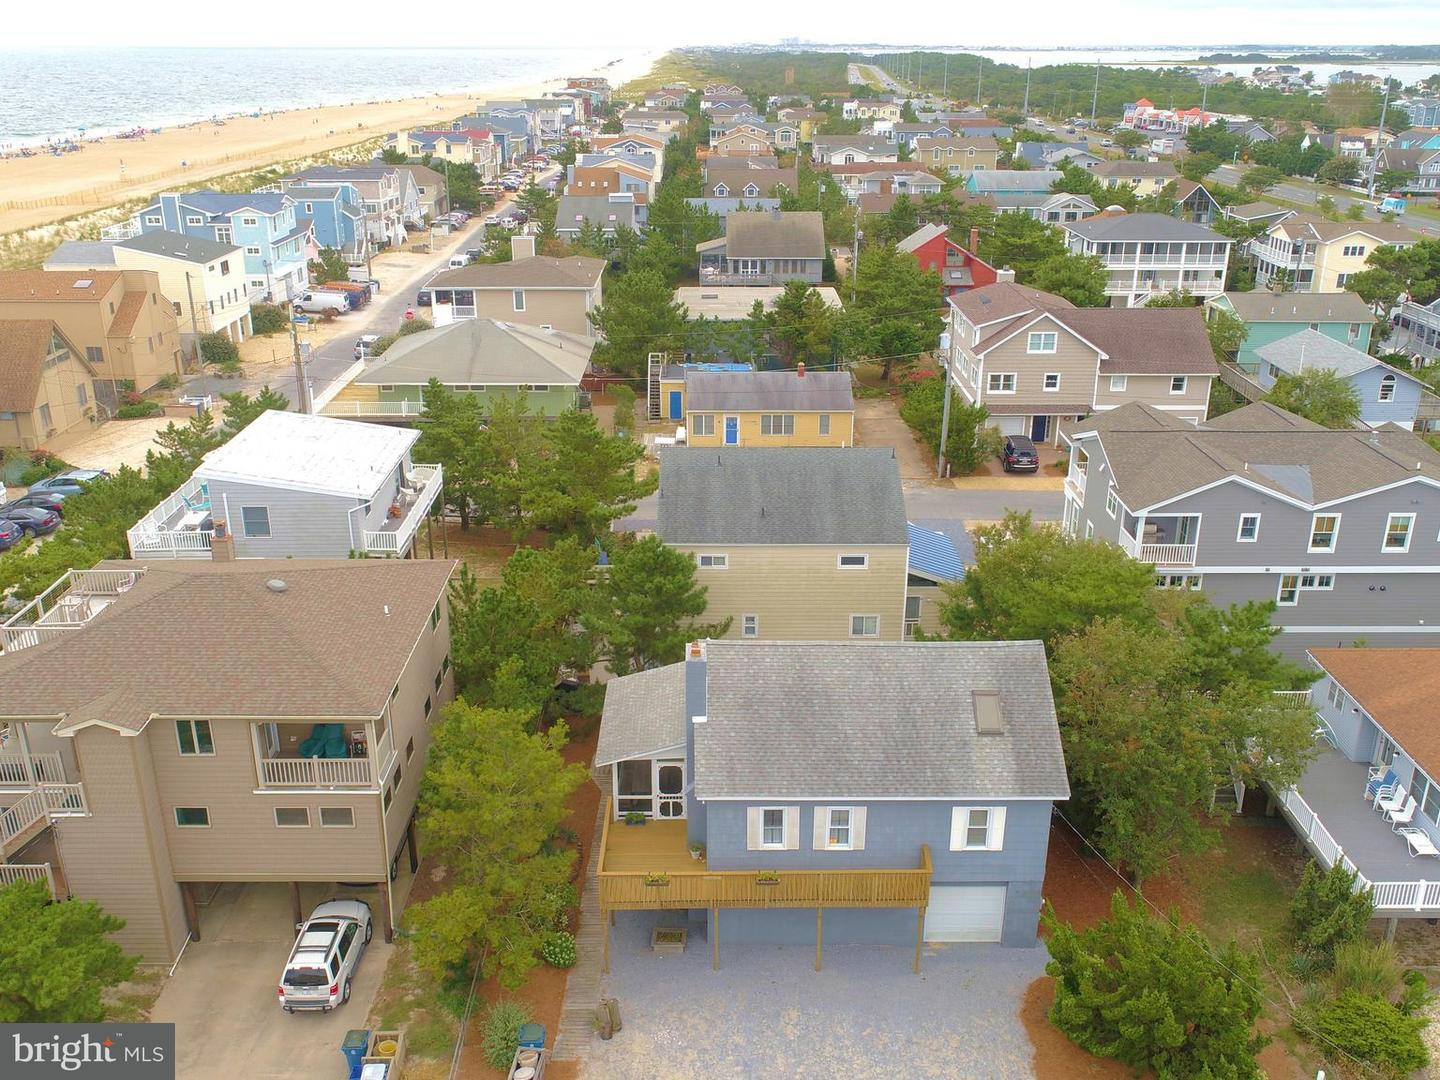 1002299338-300501703081-2018-08-30-10-08-41 4 S 4th St | South Bethany, DE Real Estate For Sale | MLS# 1002299338  - 1st Choice Properties